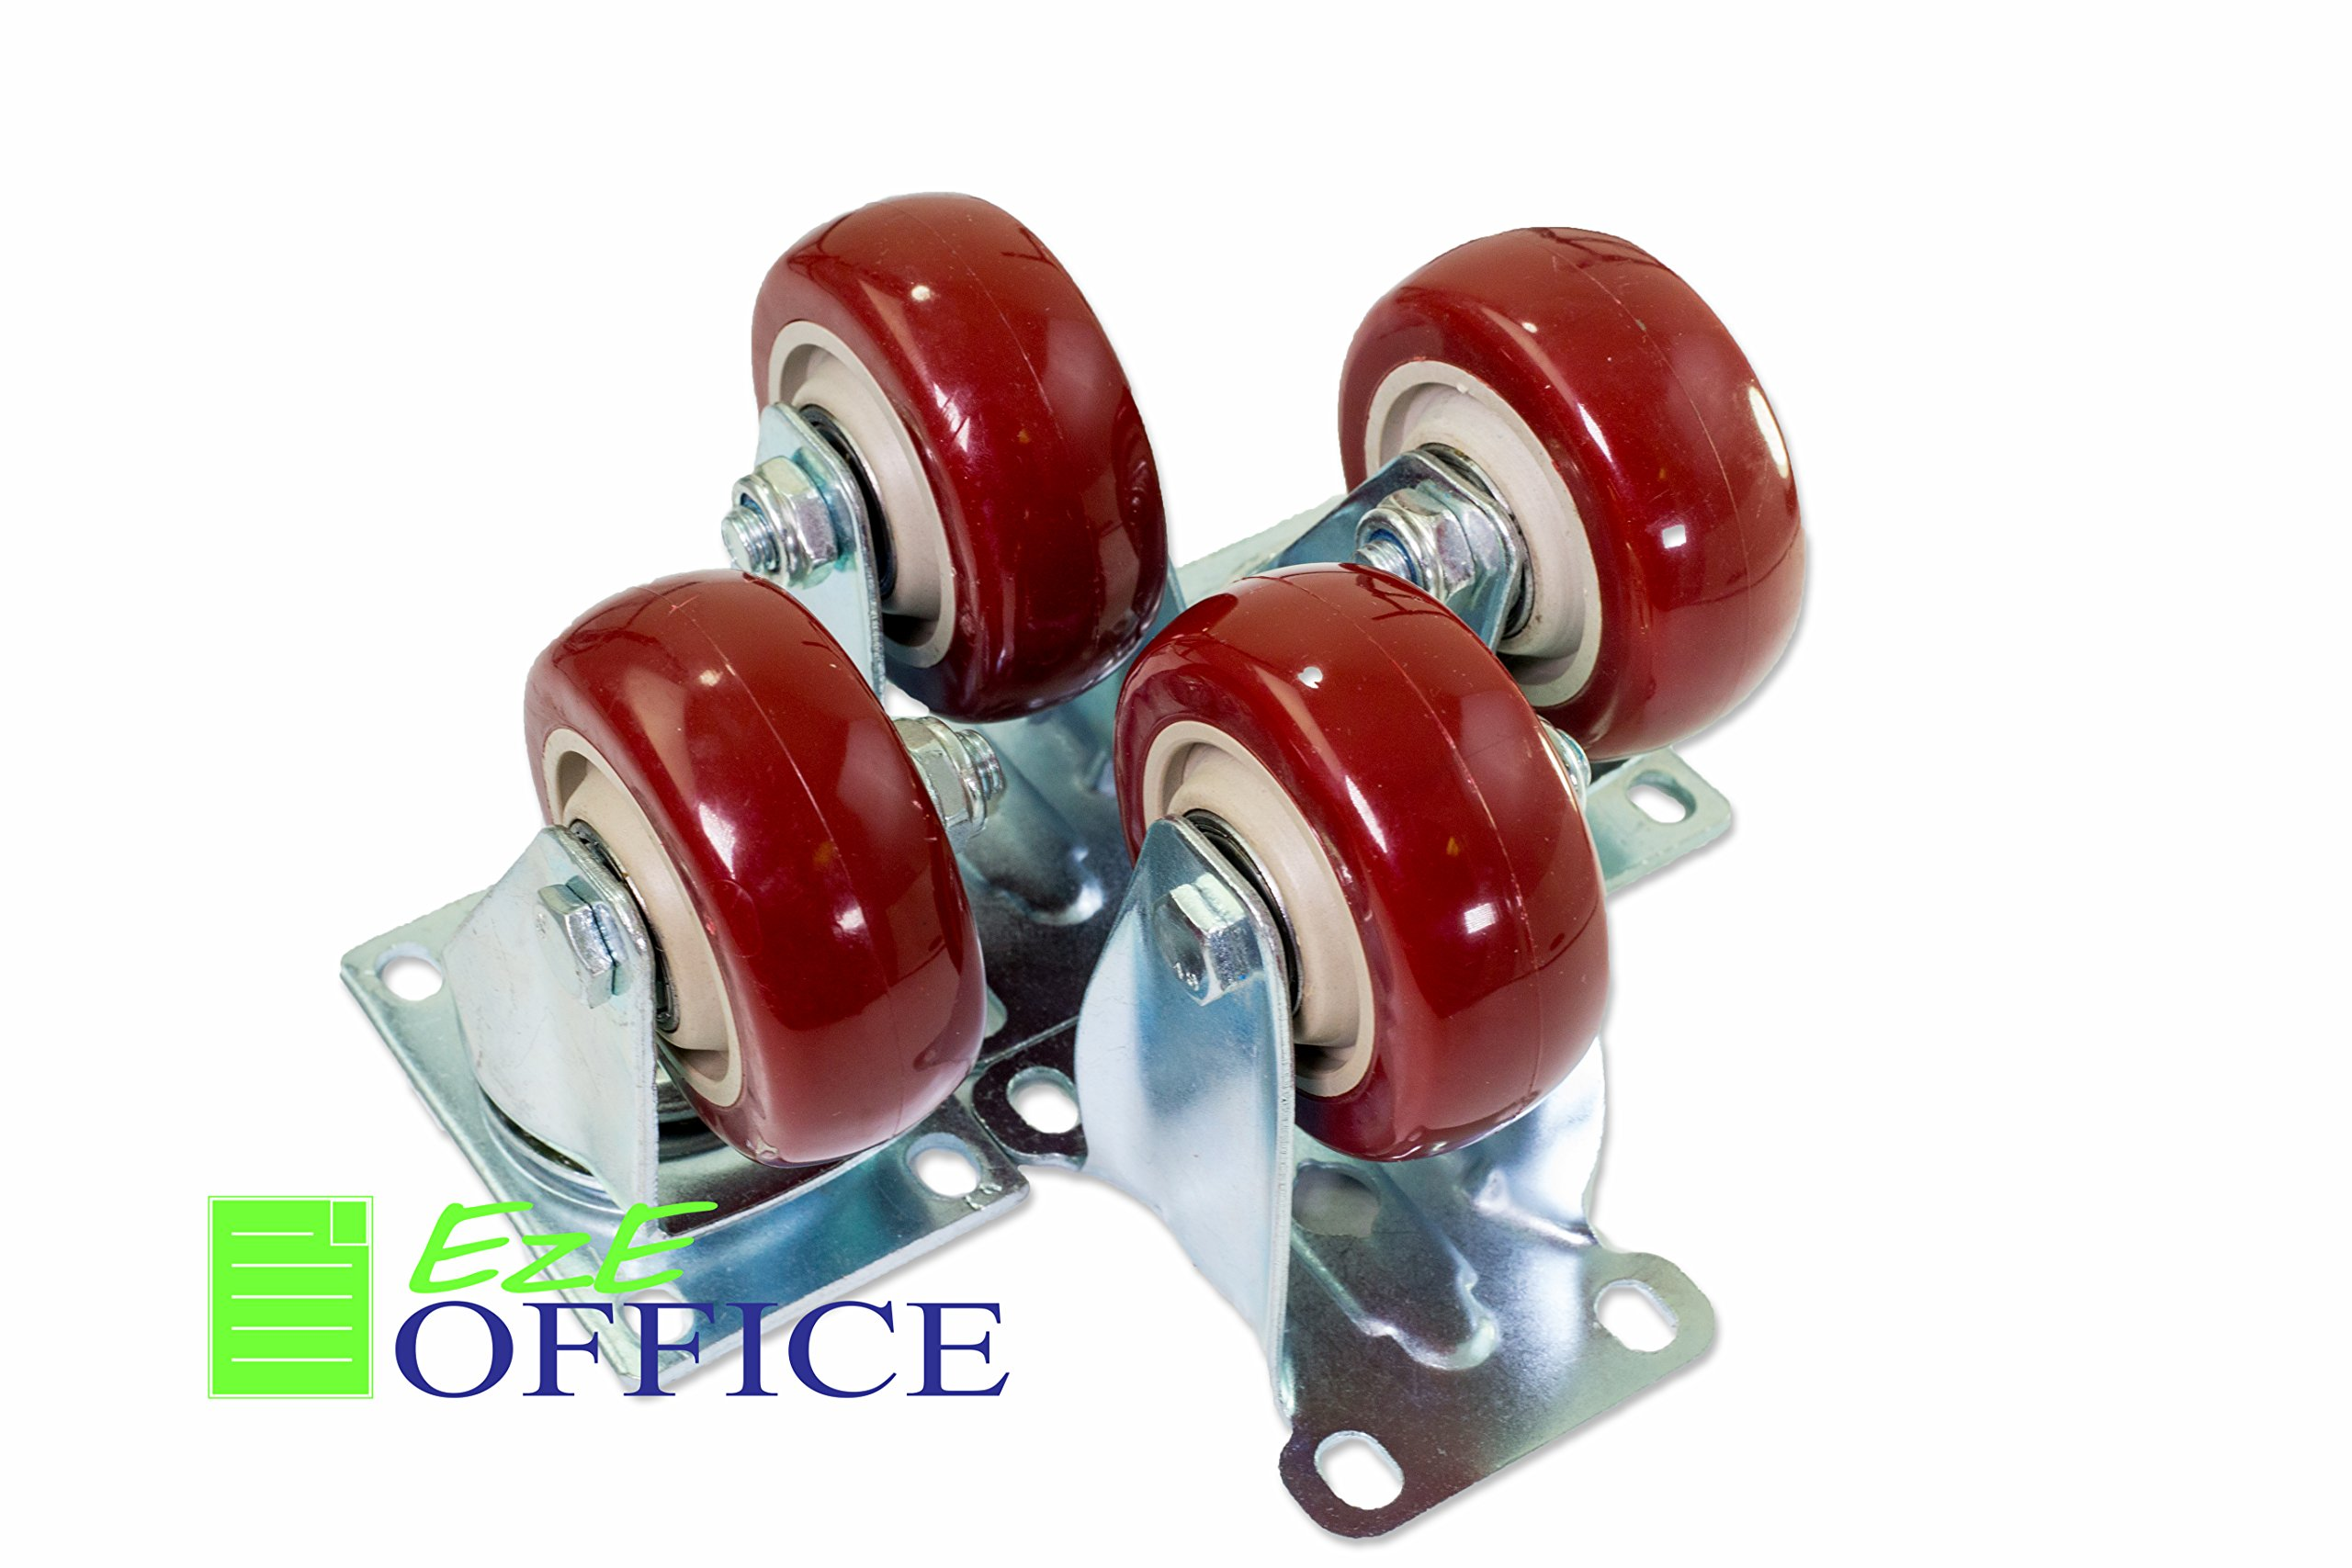 Caster Wheels 2 Swivel Casters 2 Swivel with Brake On Red Polyurethane Wheels 1200 Lbs 3 inch 4 Pack by EzE Office